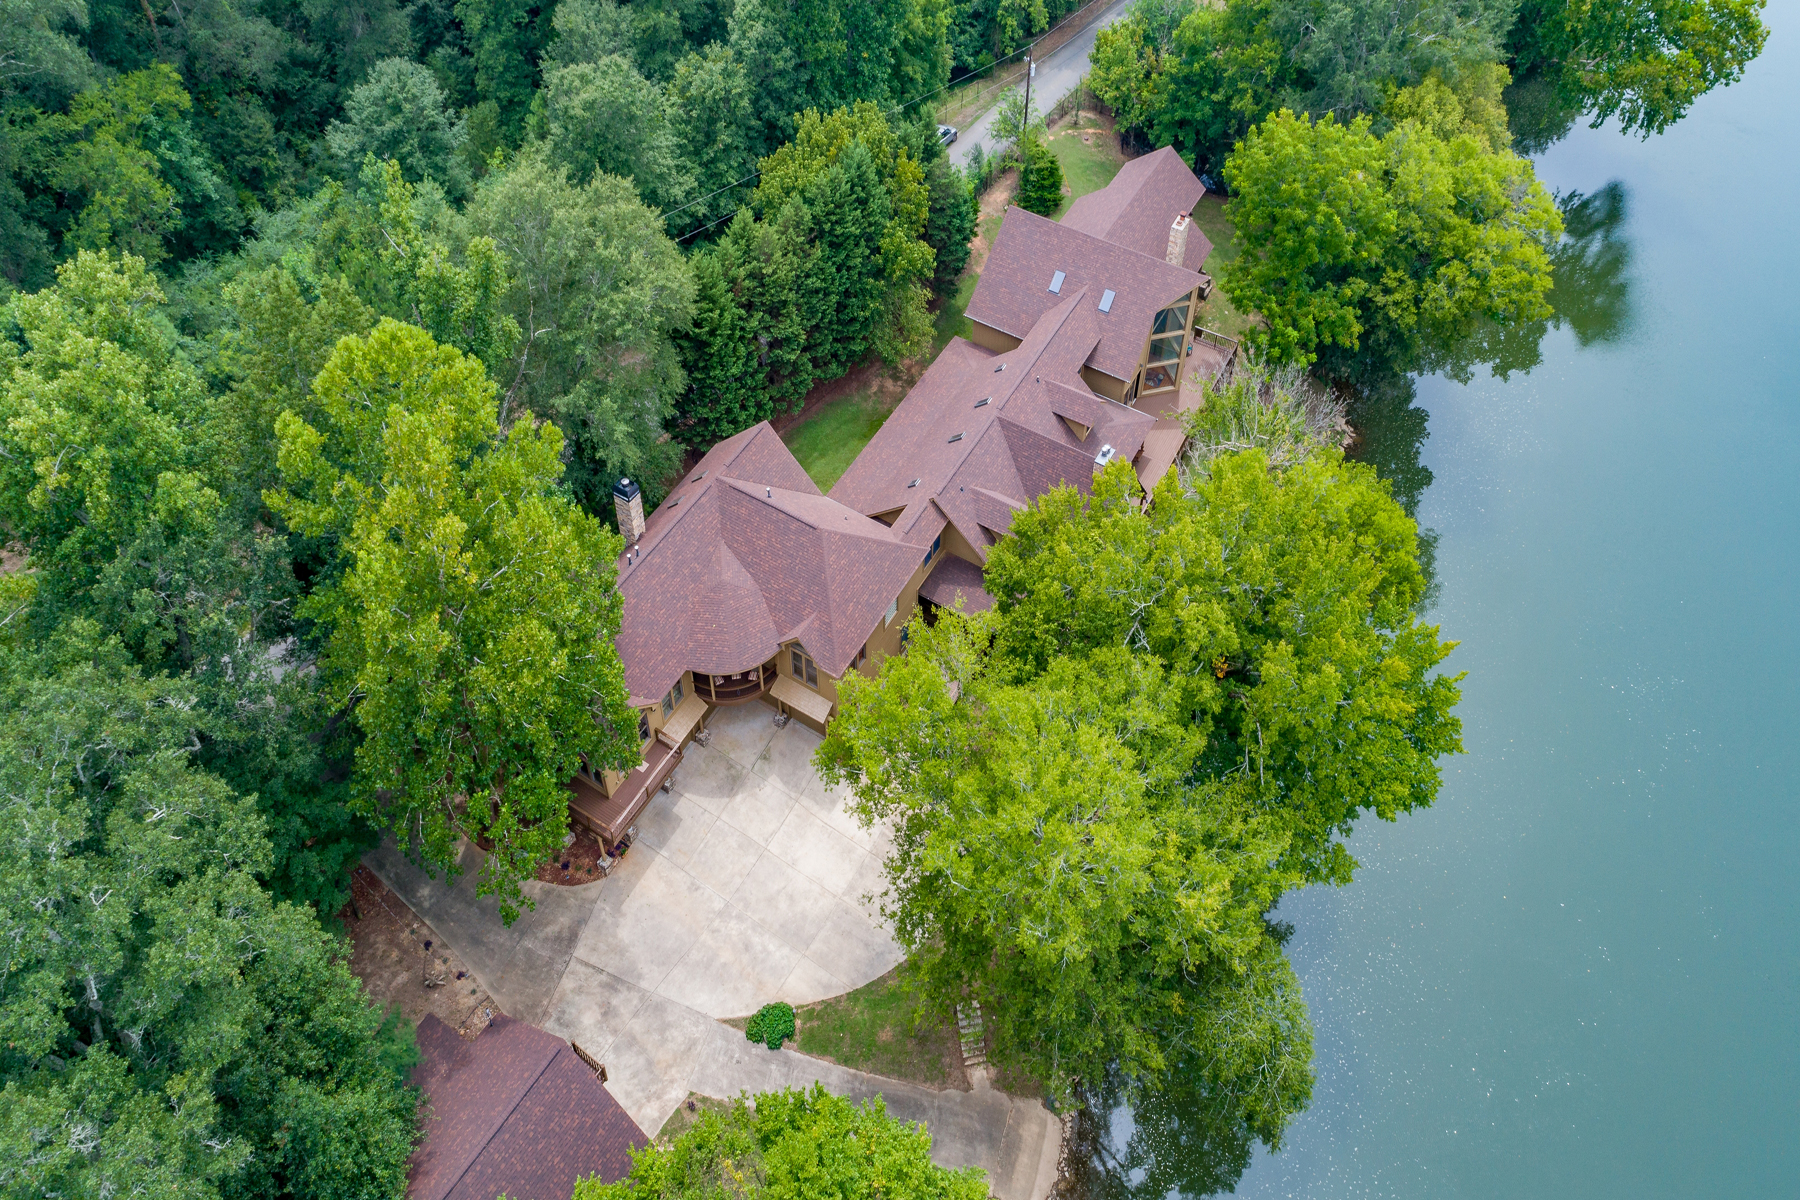 Single Family Home for Active at Stunning Riverfront Dream Home 50 Jones Slough Road Kingston, Georgia 30145 United States